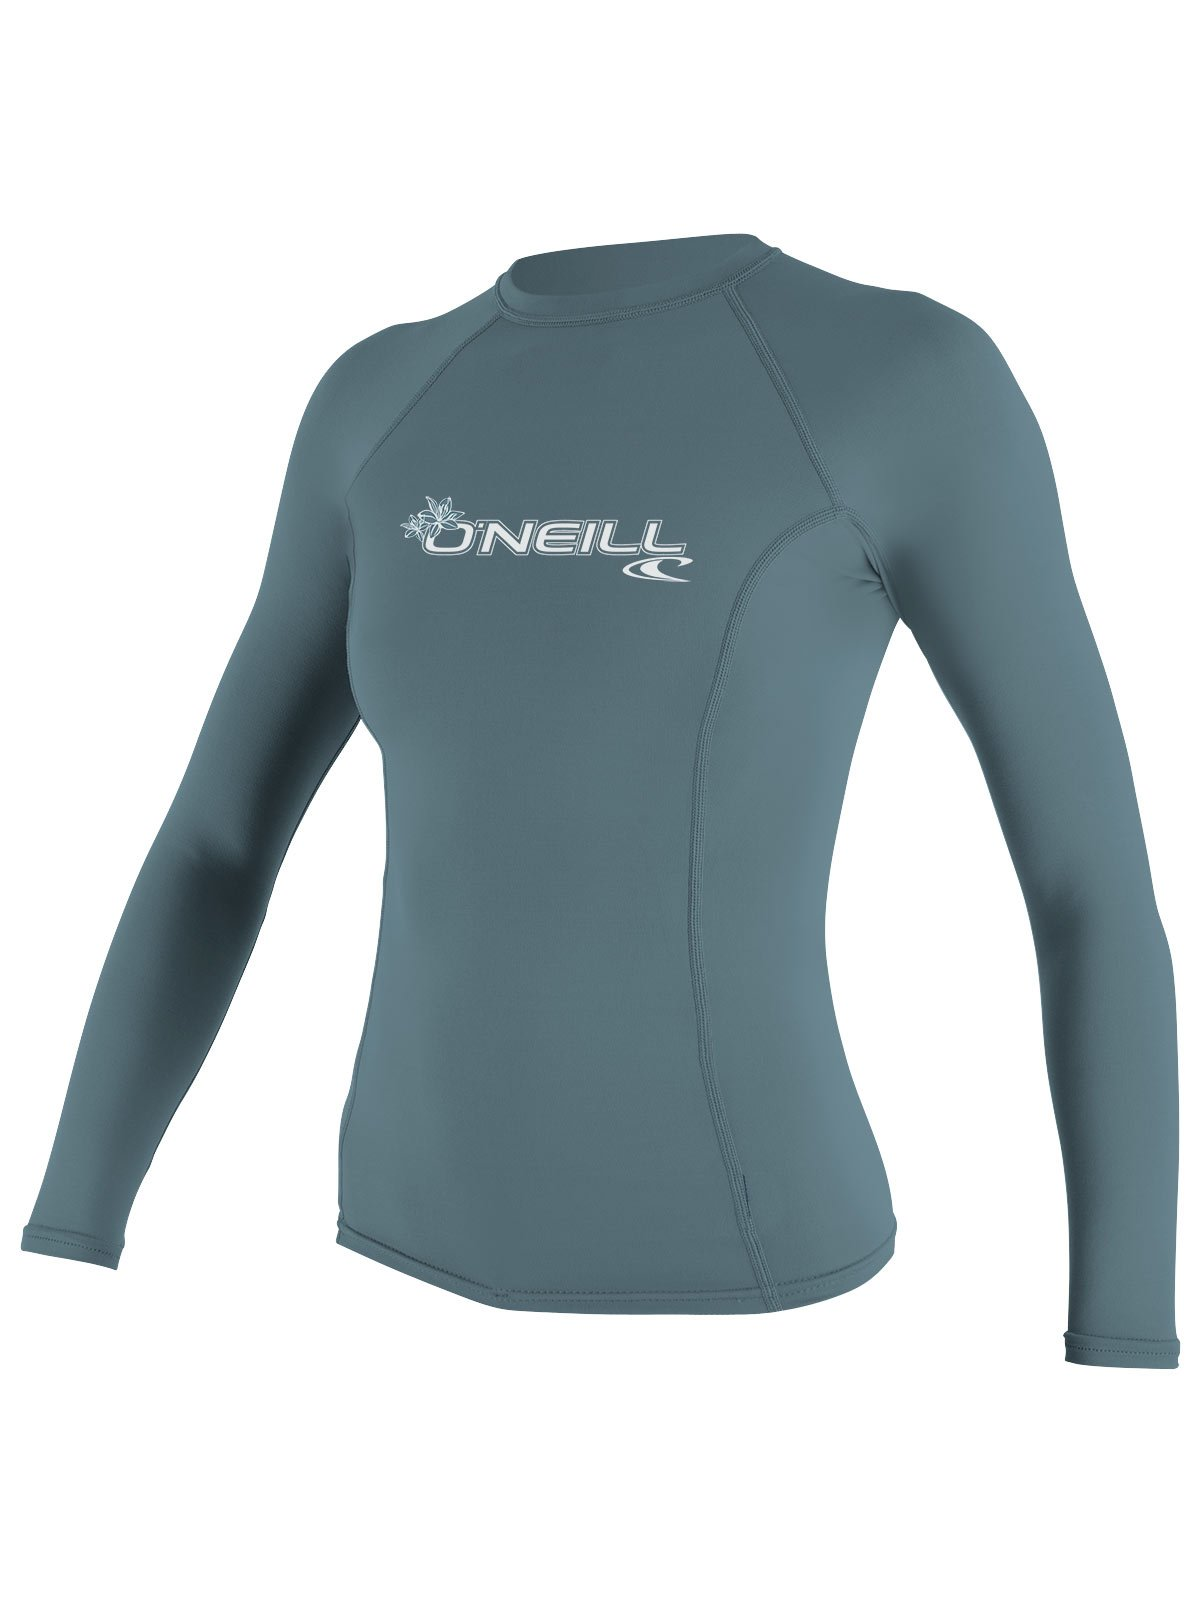 O'Neill women's basic skins long sleeve rashguard